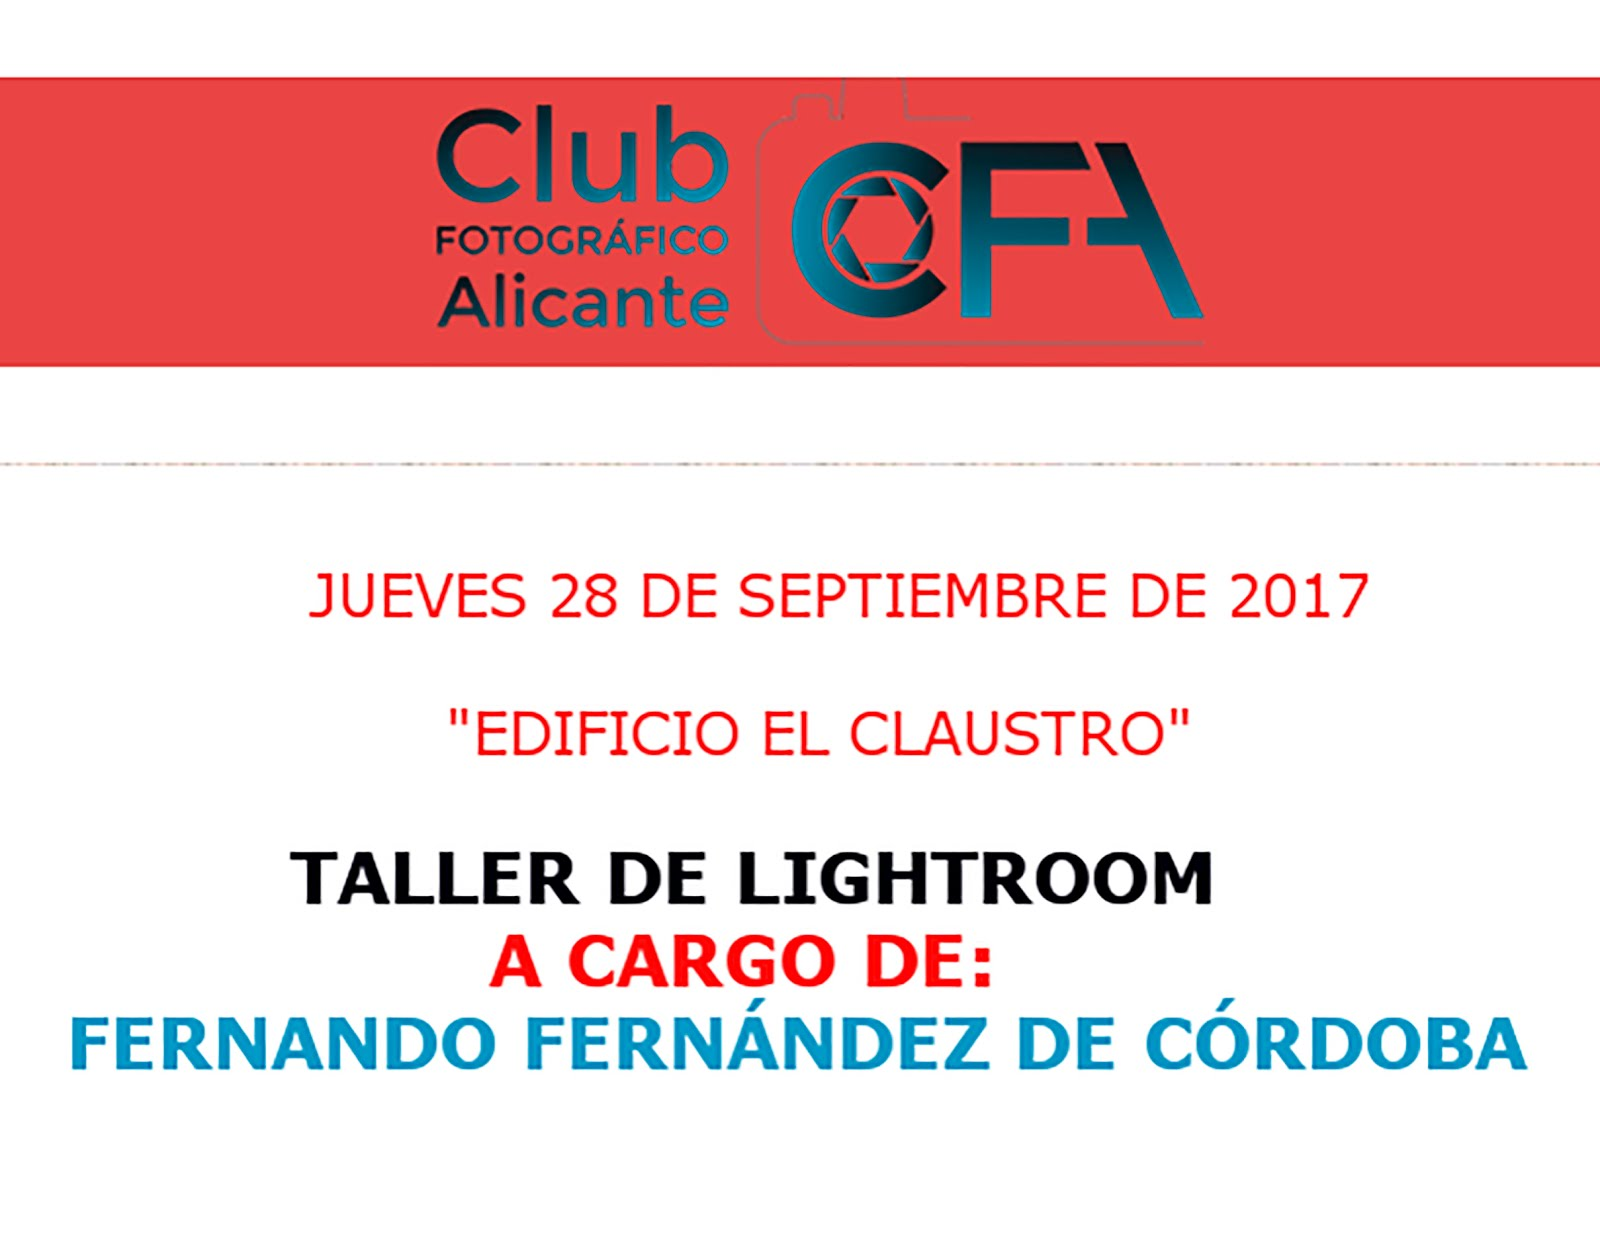 TALLER DE LIGHTROOM